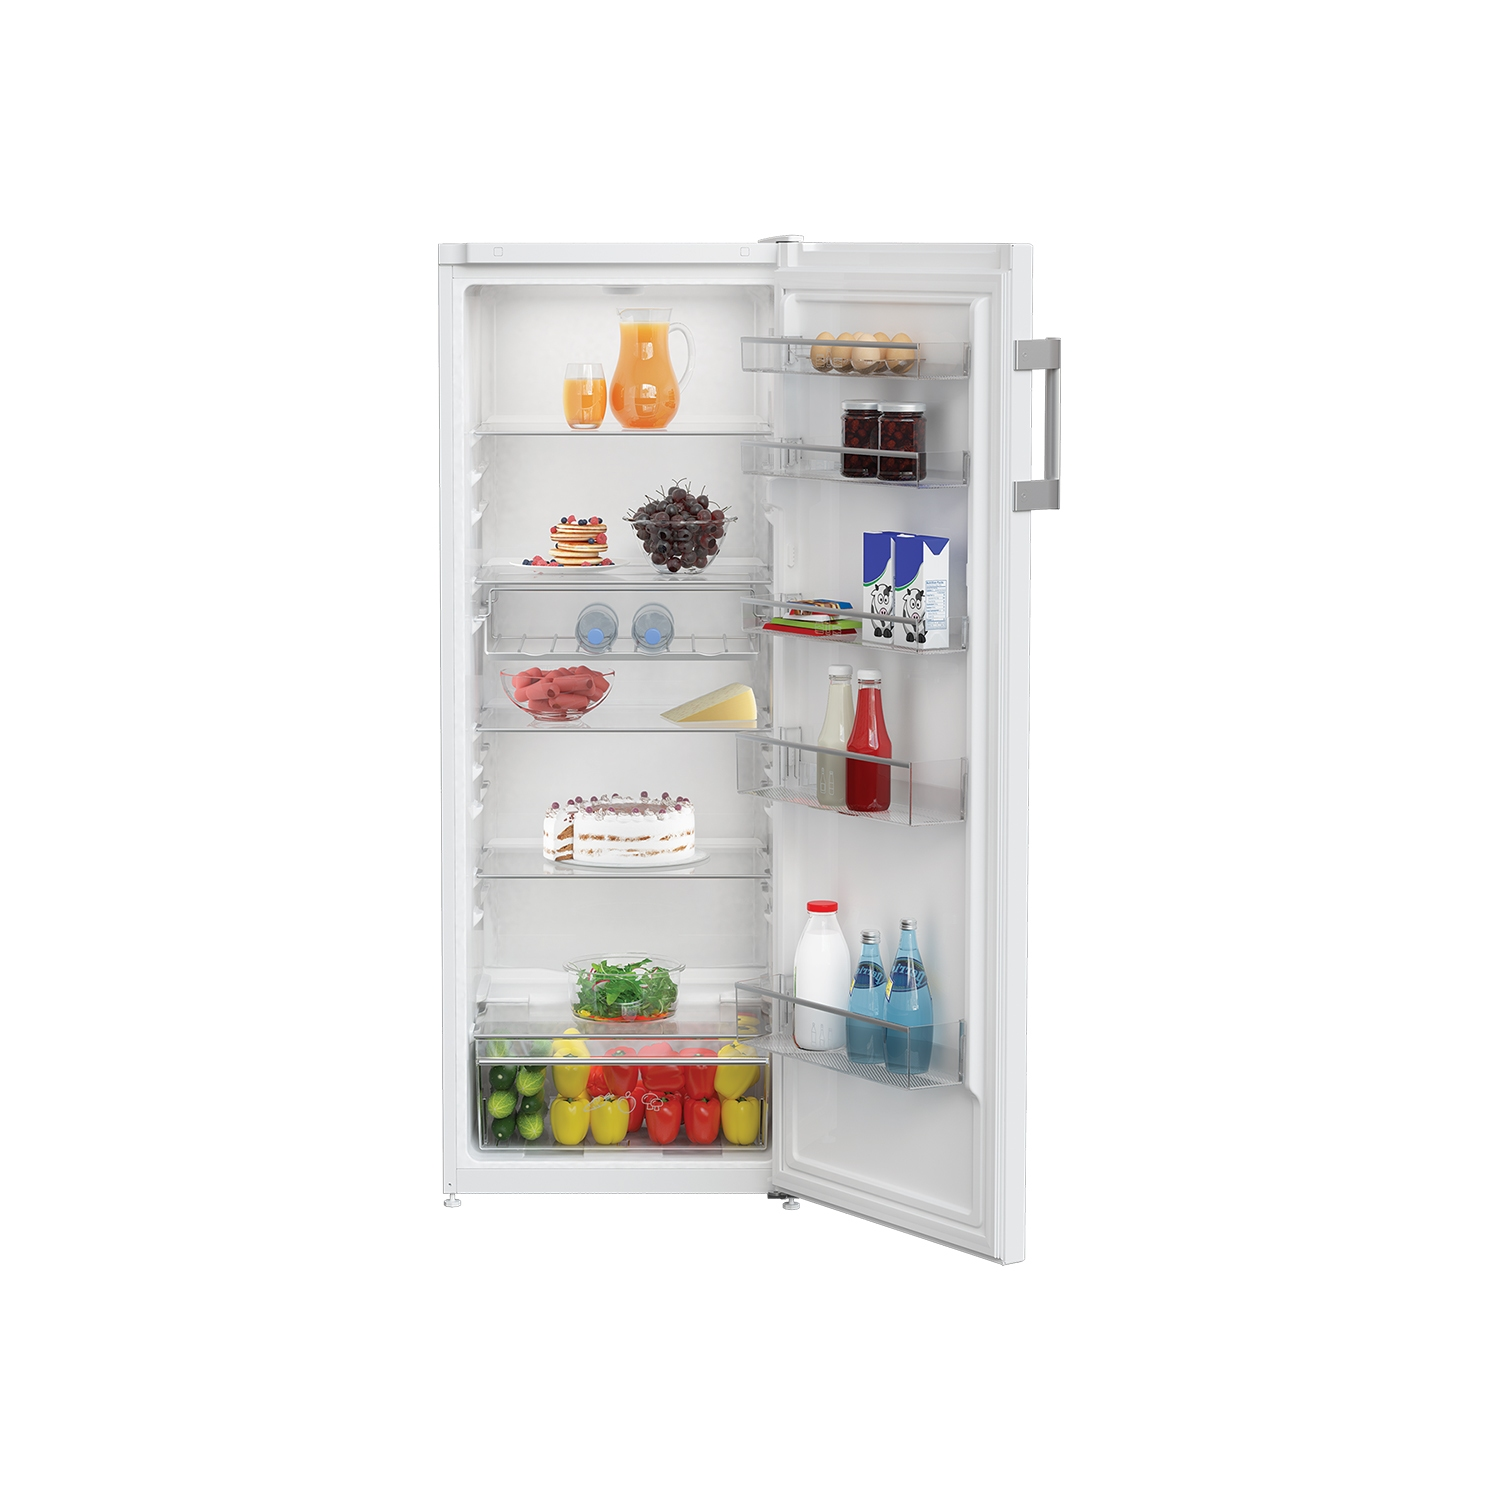 Blomberg SSM4543 54cm Tall Larder Fridge - White - 2